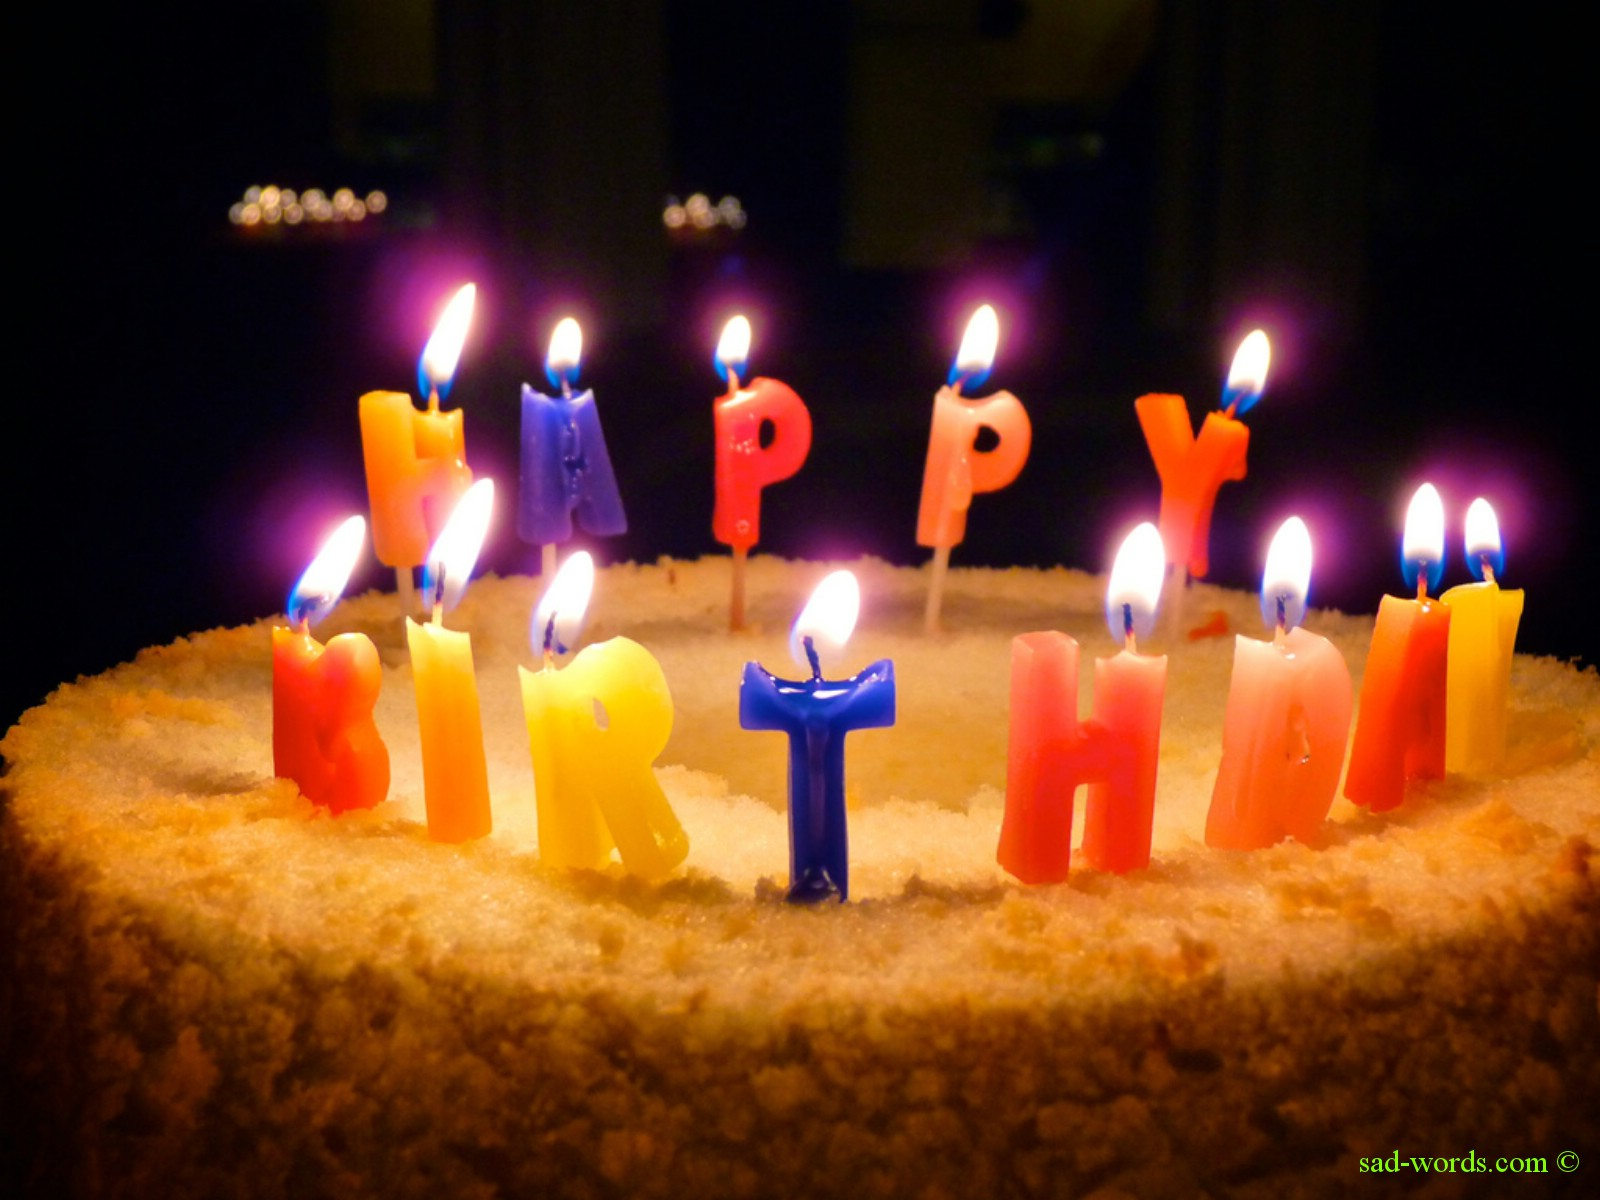 صور تورتة عيد ميلاد كبيرة http://www.sad-words.com/2013/05/Happy-birthday-cake-hd.html